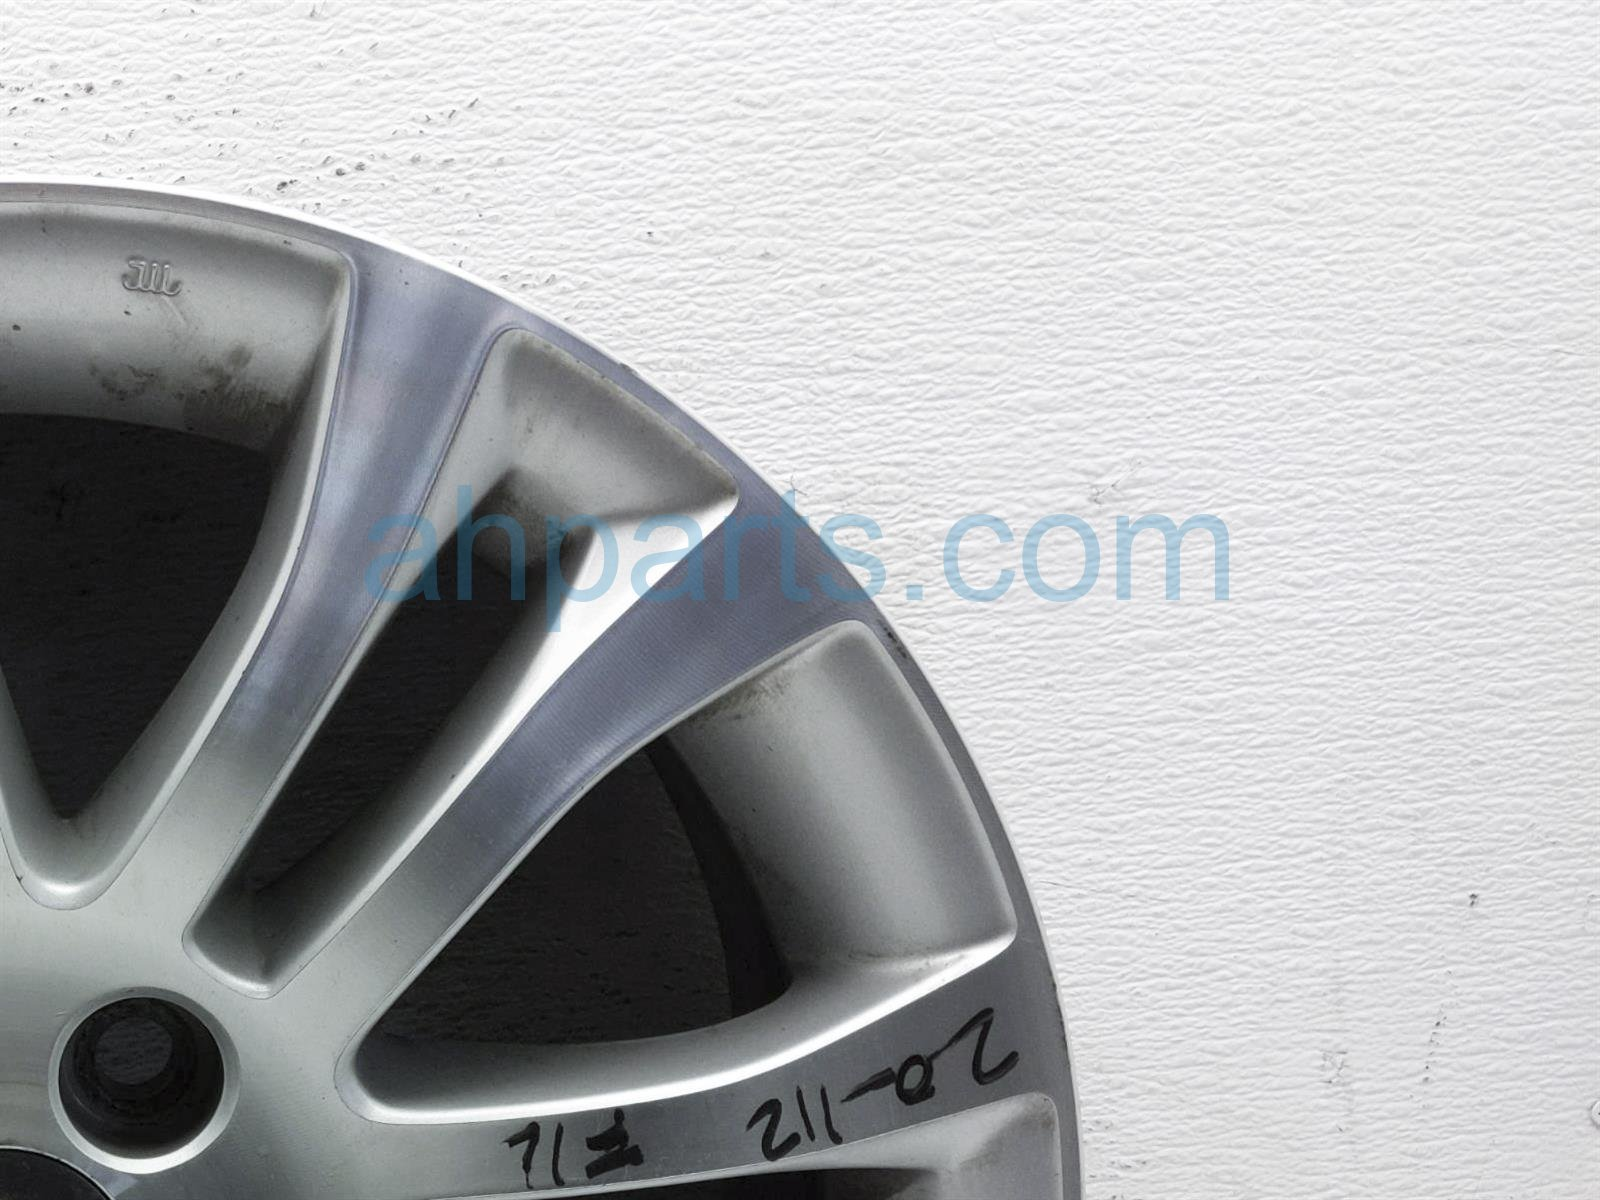 2013 Toyota Sienna Front Driver Wheel/rim   Light Scratches 42611 08130 Replacement